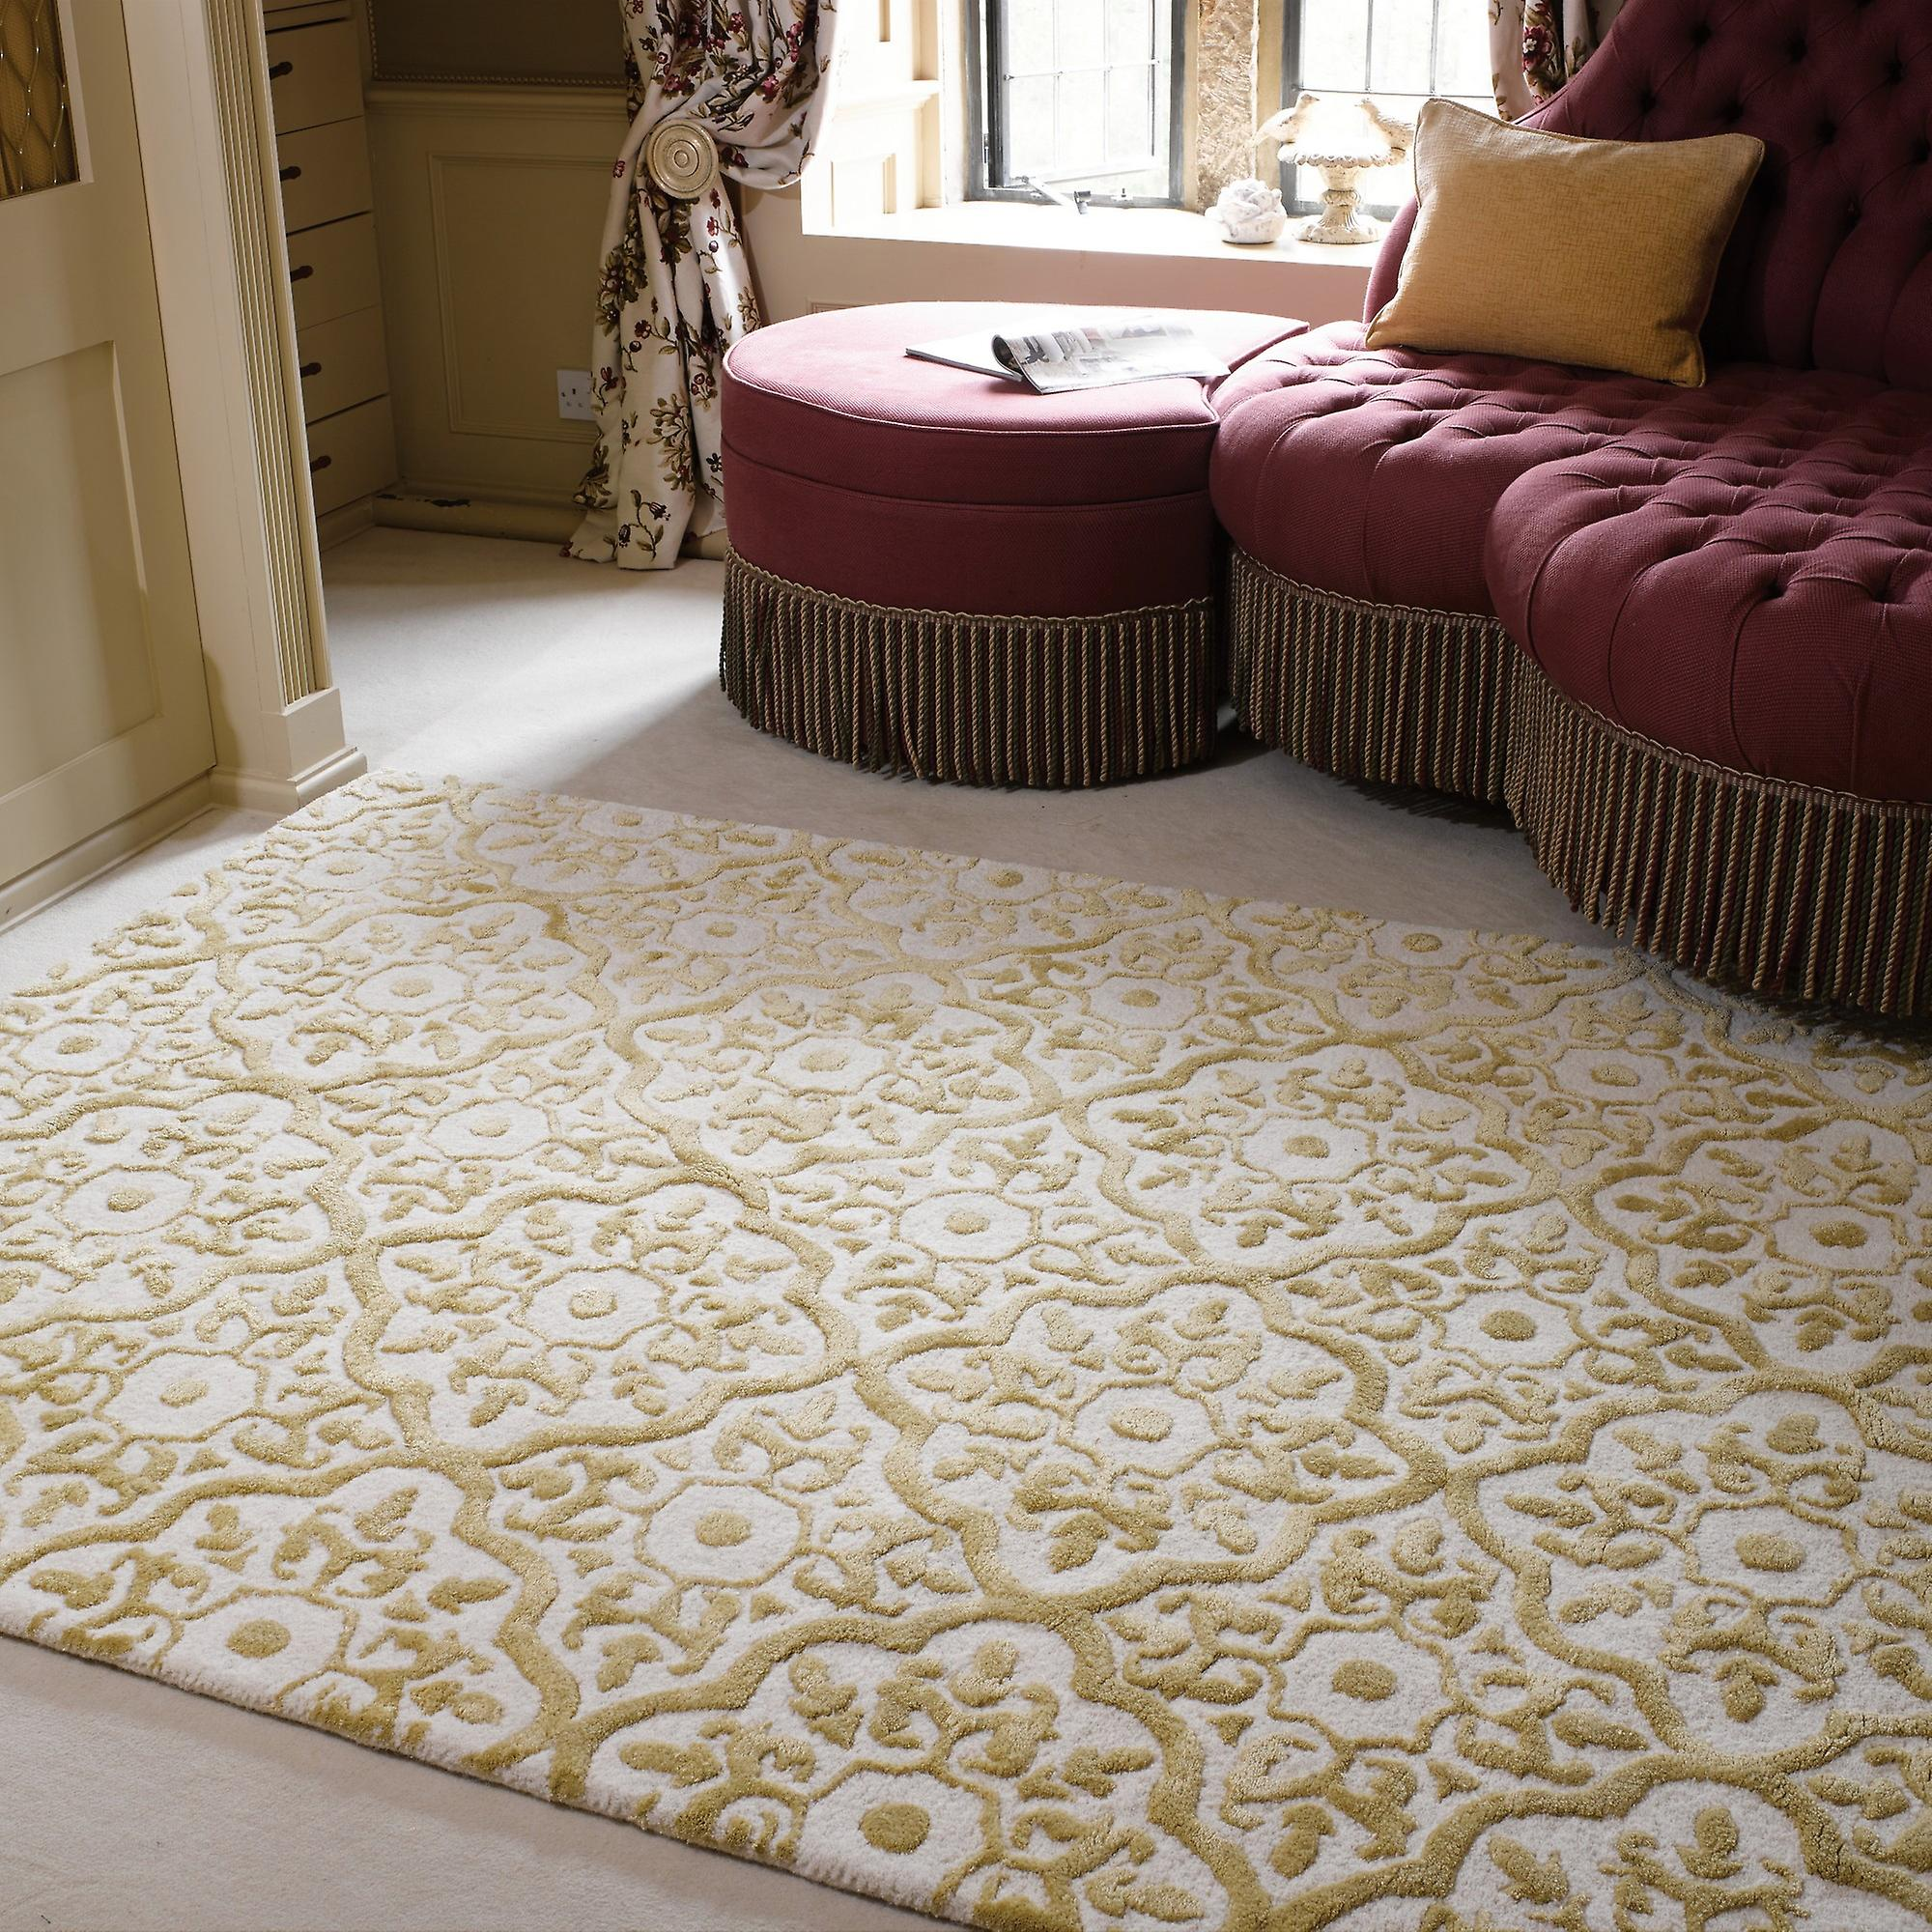 Tapis de Knightsbridge Mayfair en or